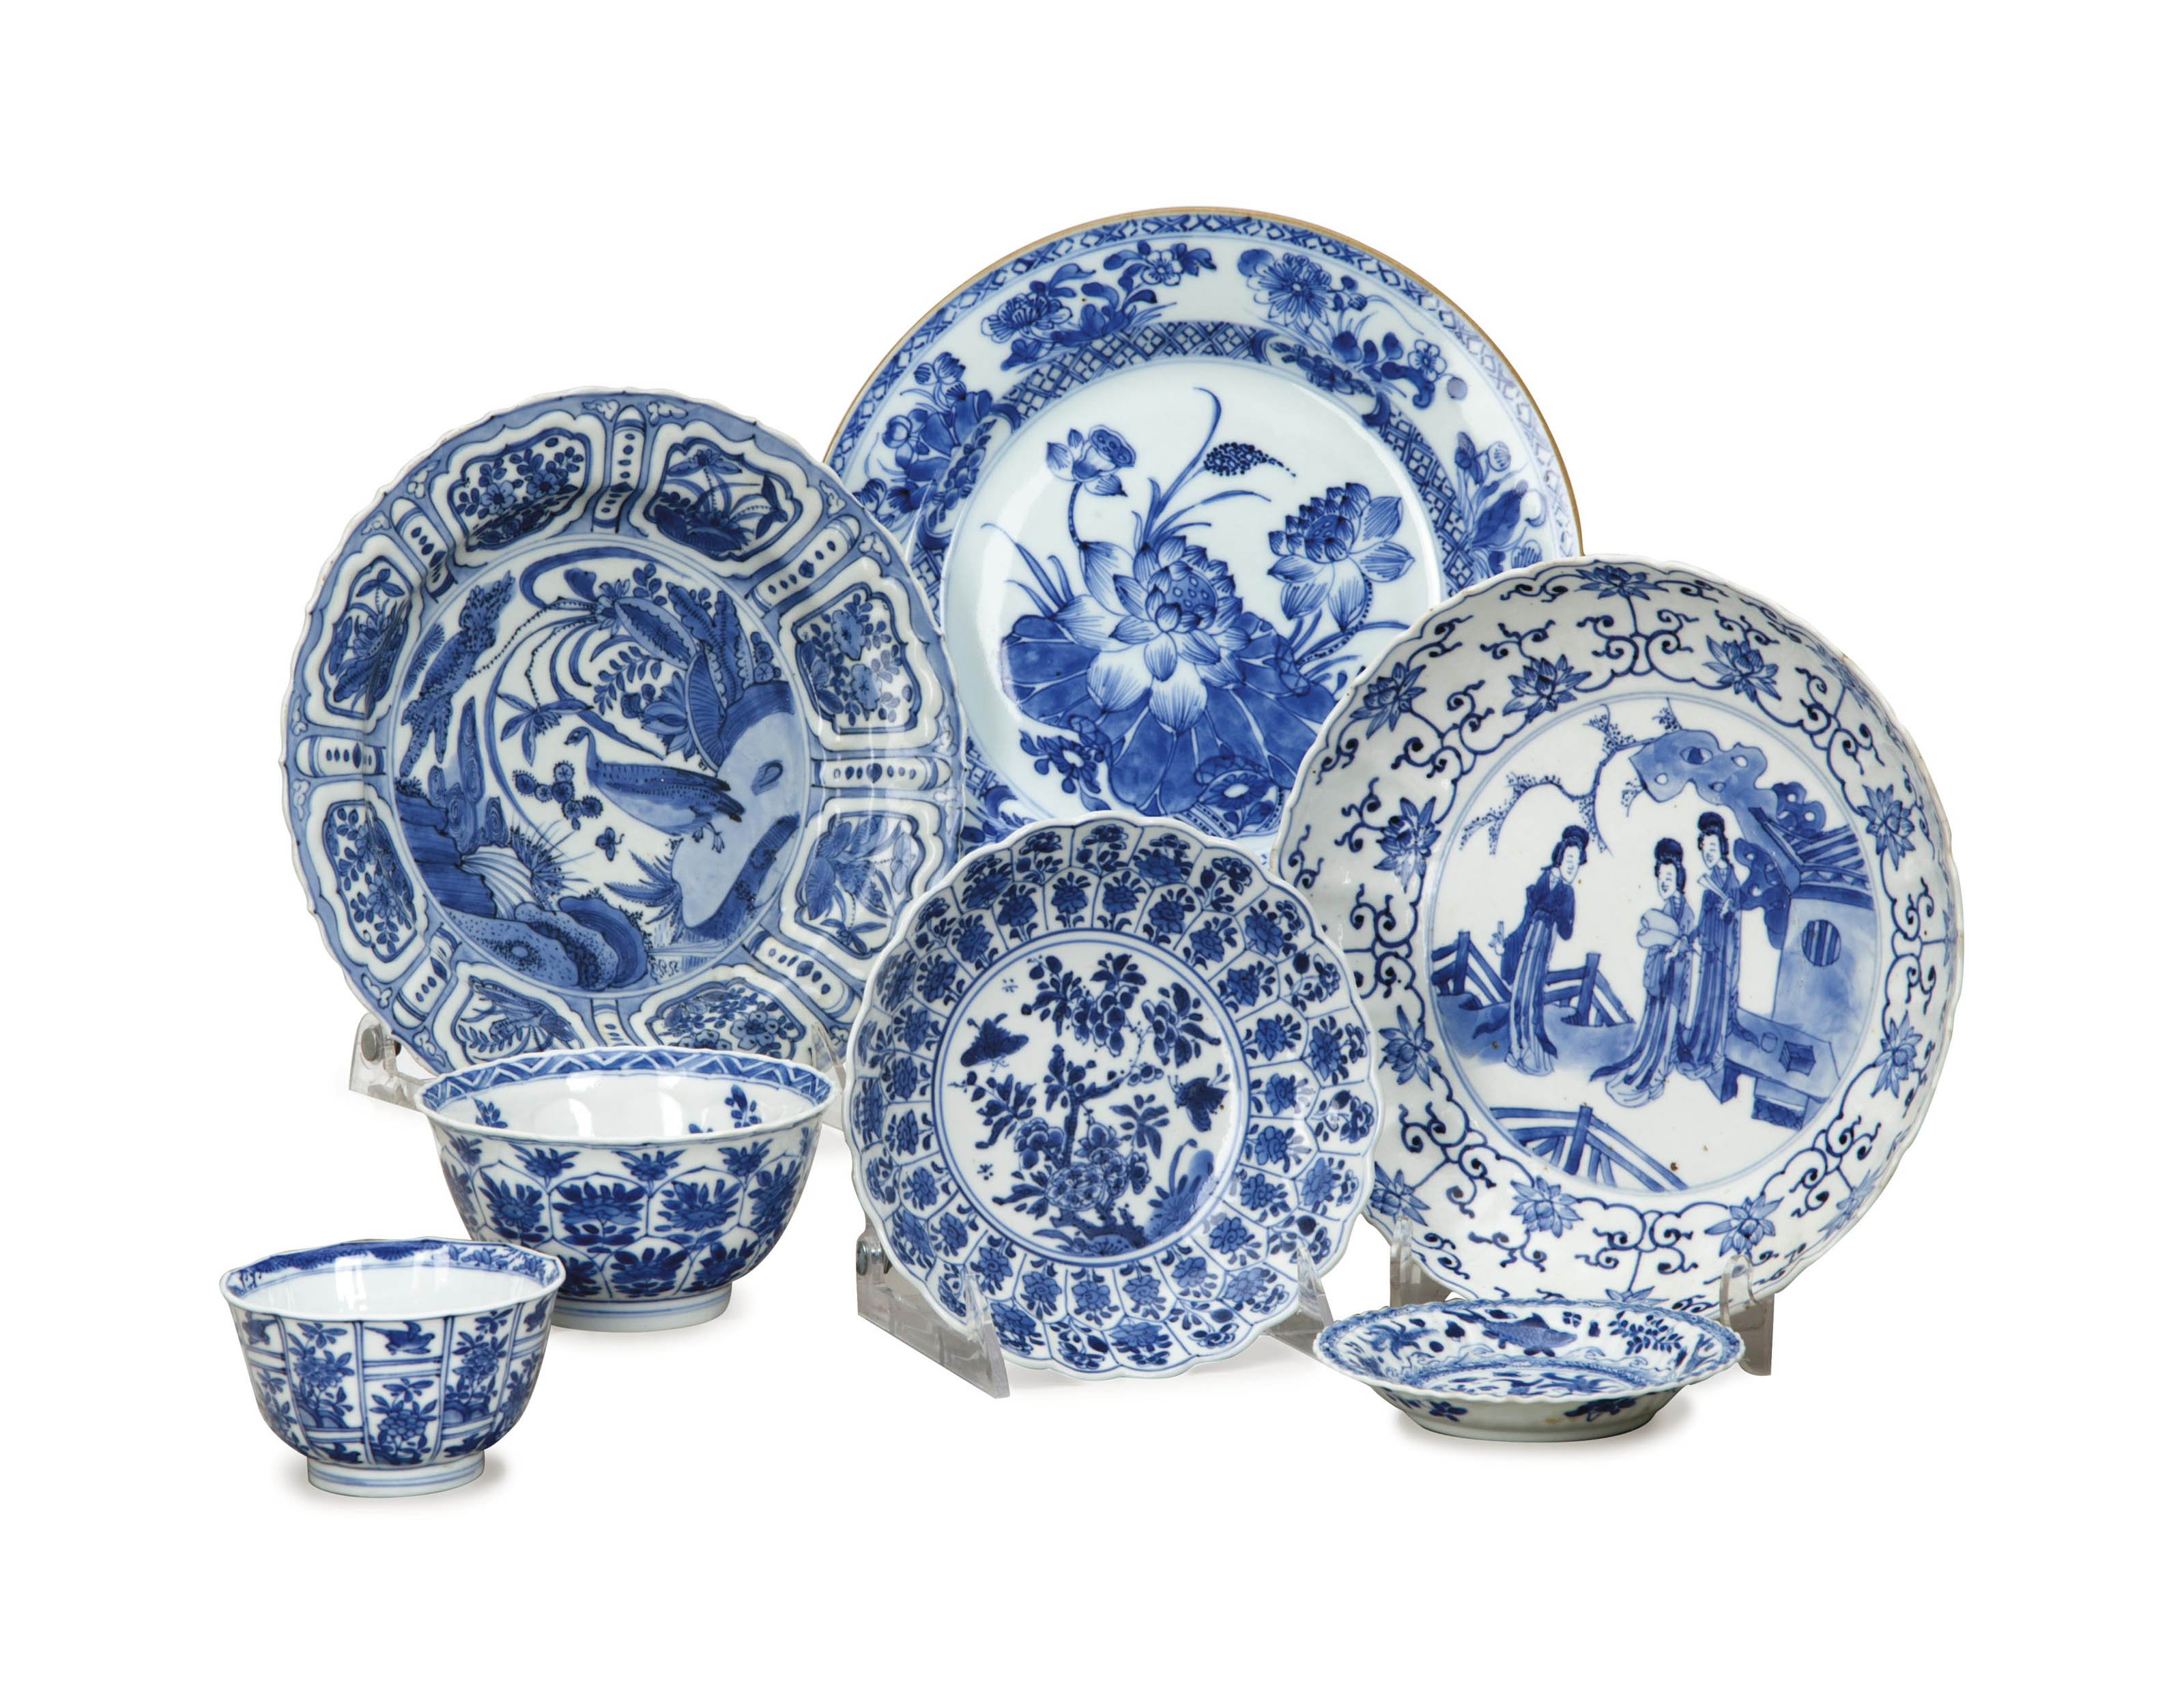 A GROUP OF CHINESE AND CHINESE EXPORT BLUE AND WHITE WARES,